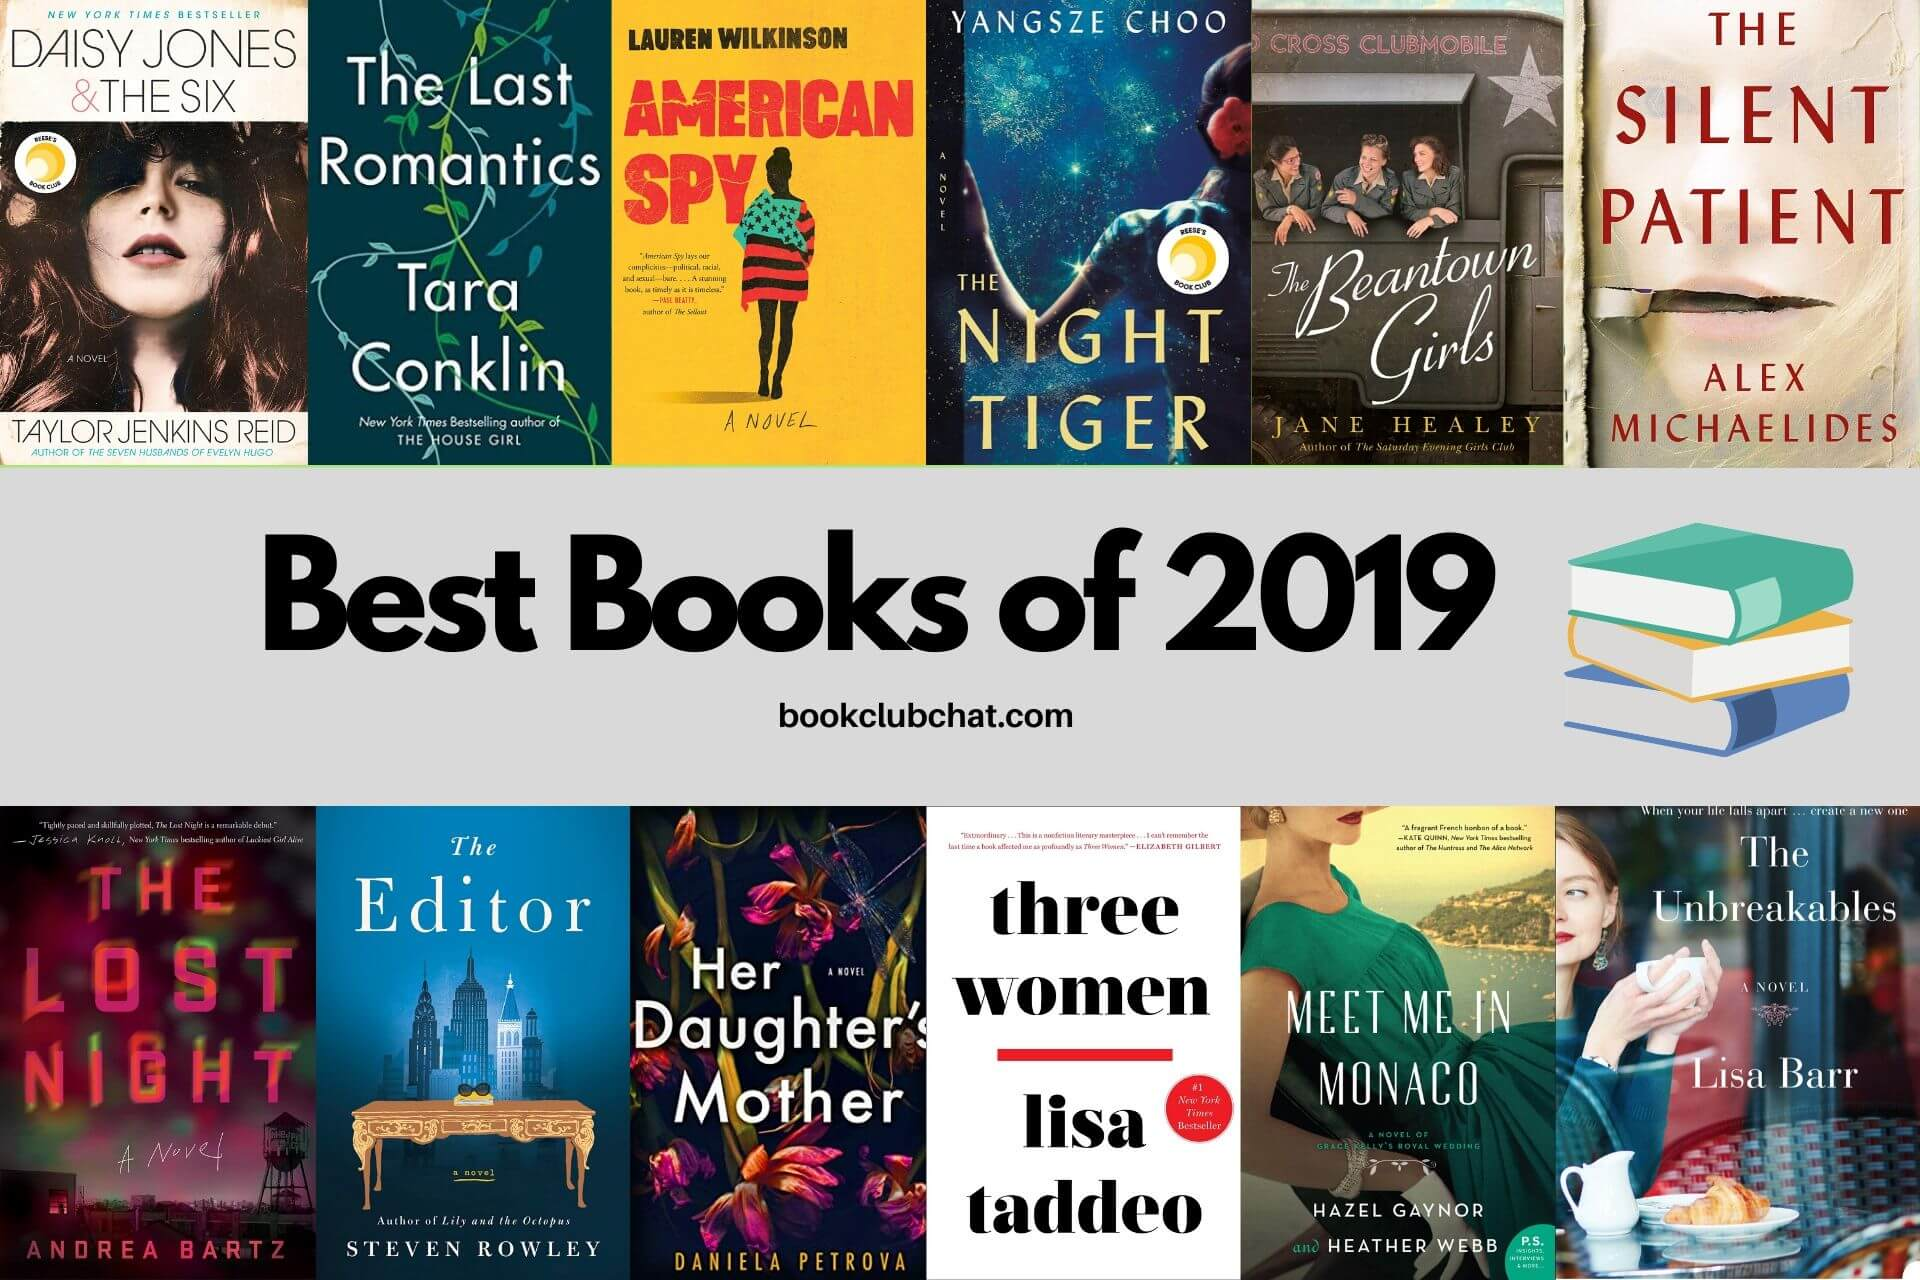 best books of 2019 - book club chat